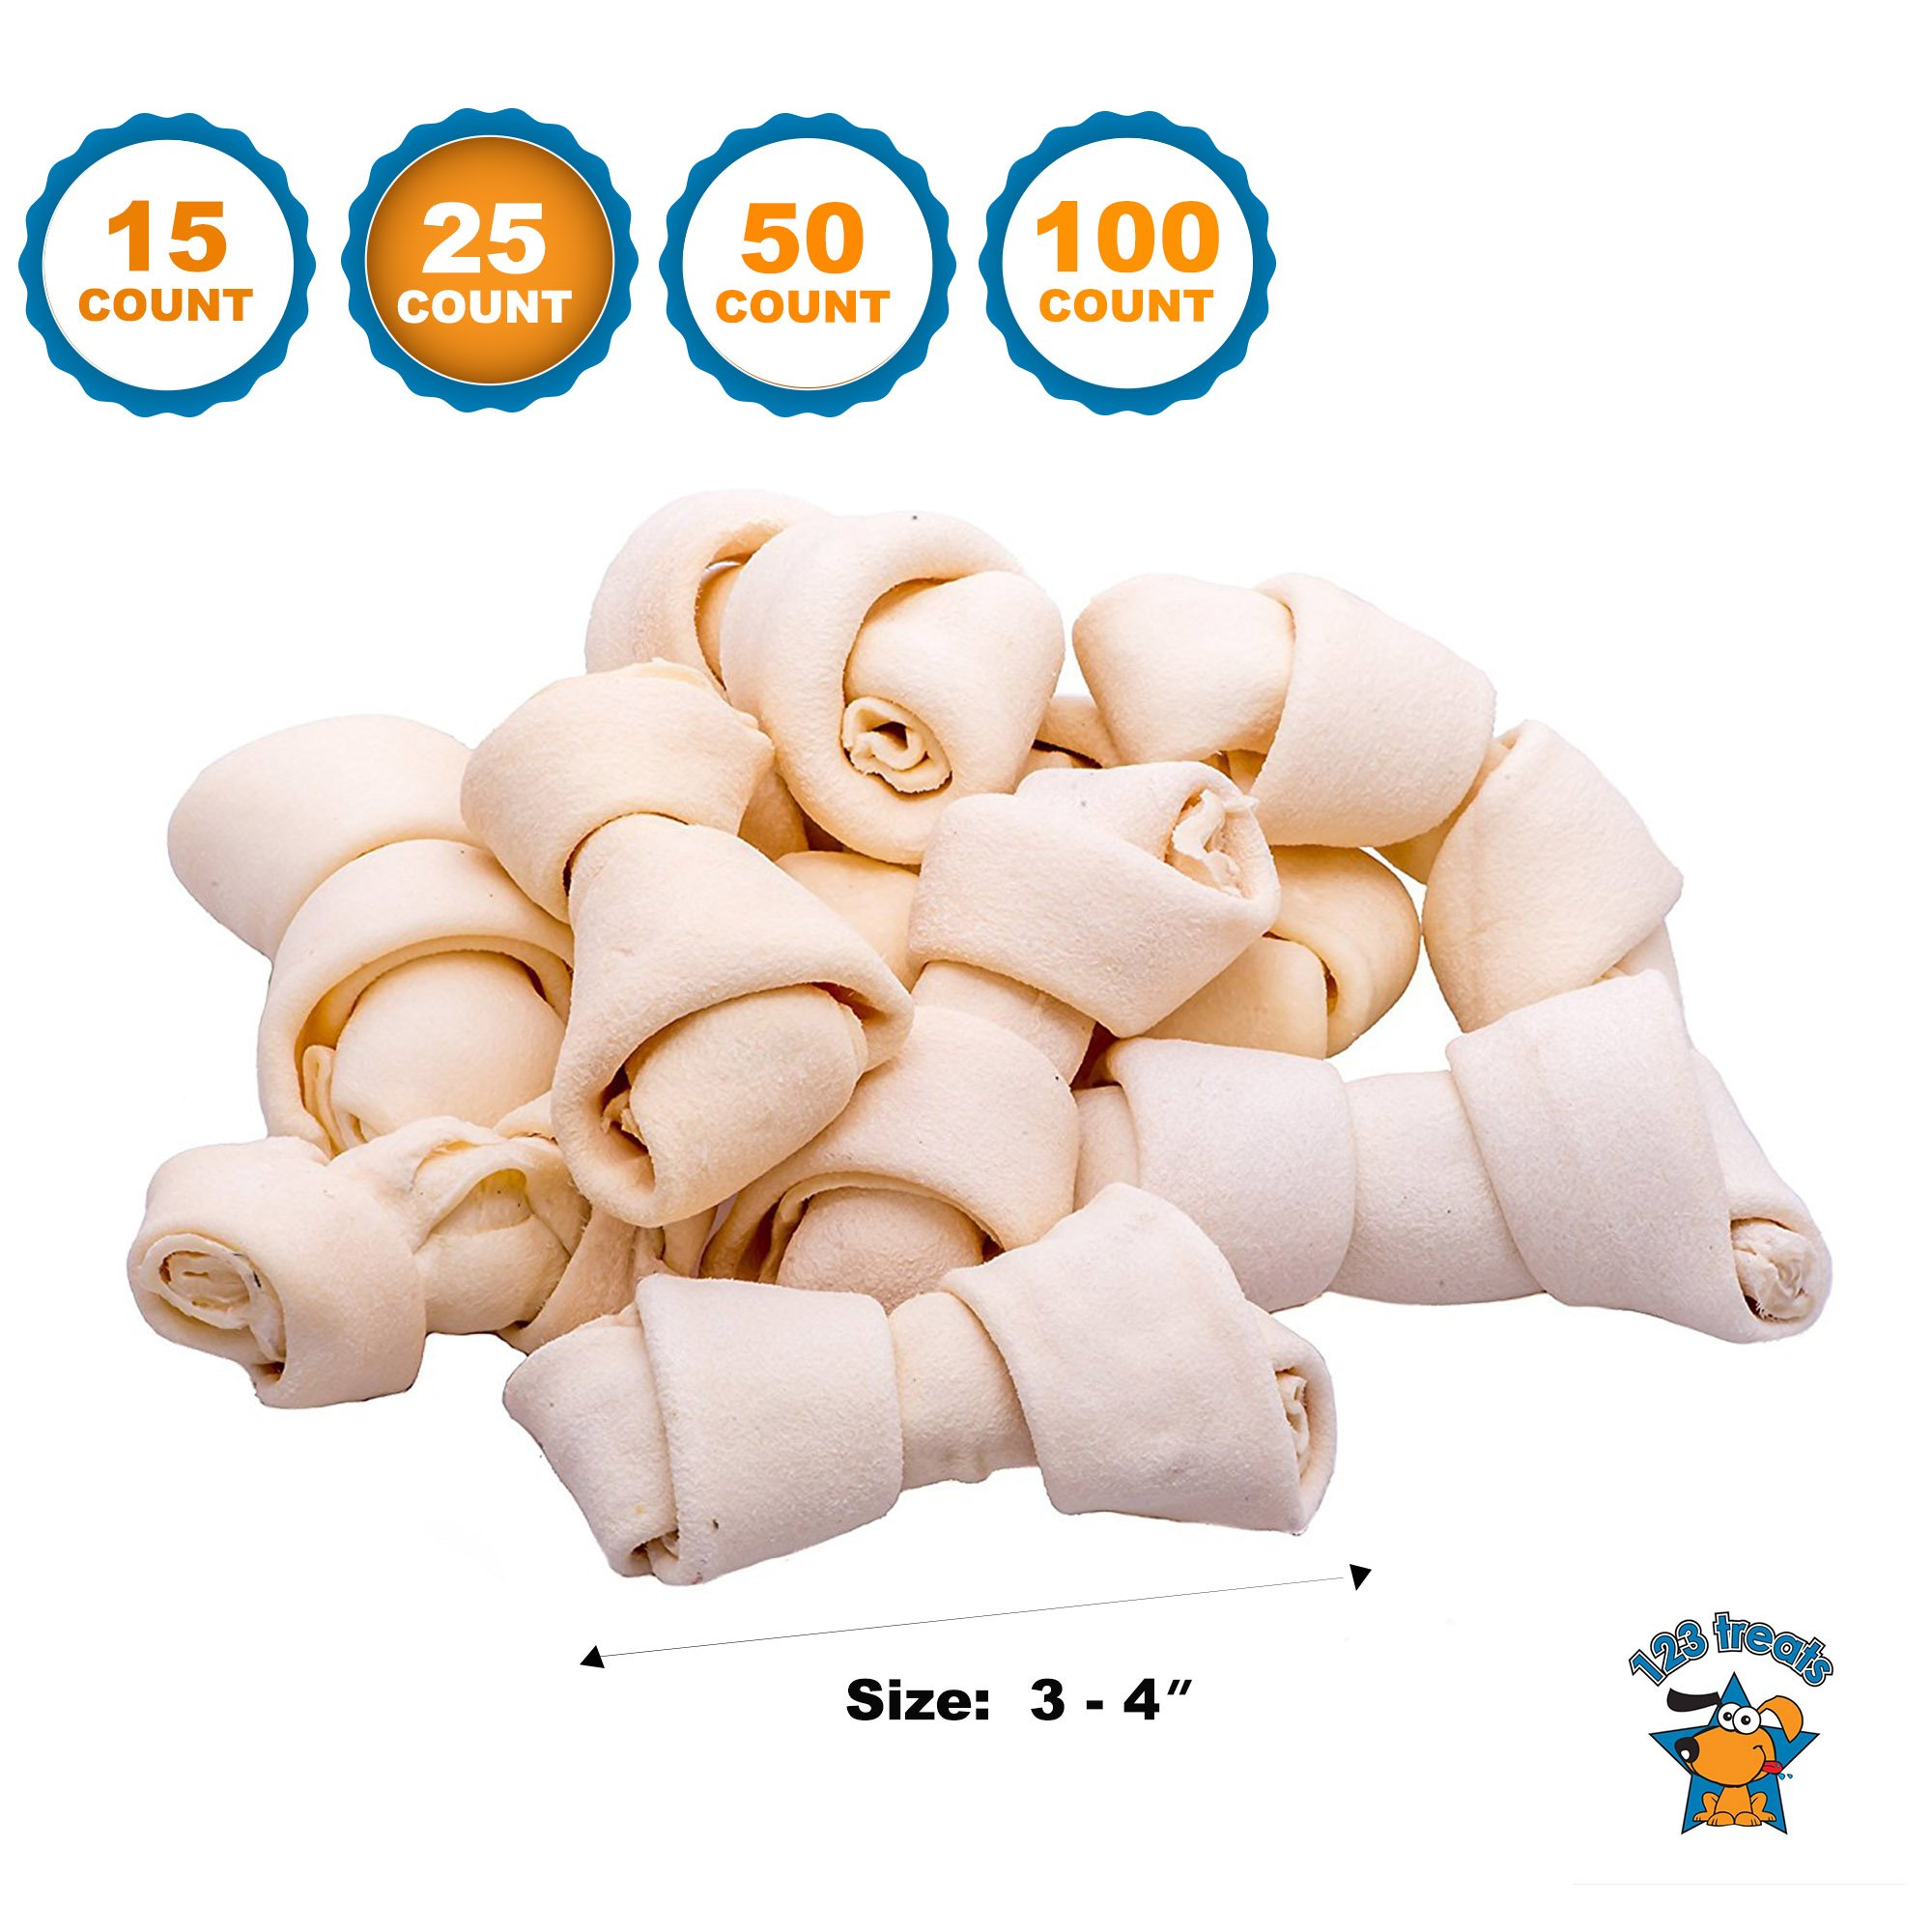 123 Treats | Rawhide Bones Chews 3-4'' (25 Count) Premium Rawhide Dog Bones | Free Range Grass Fed Cattle with No Hormones, Additives or Chemicals by 123 Treats